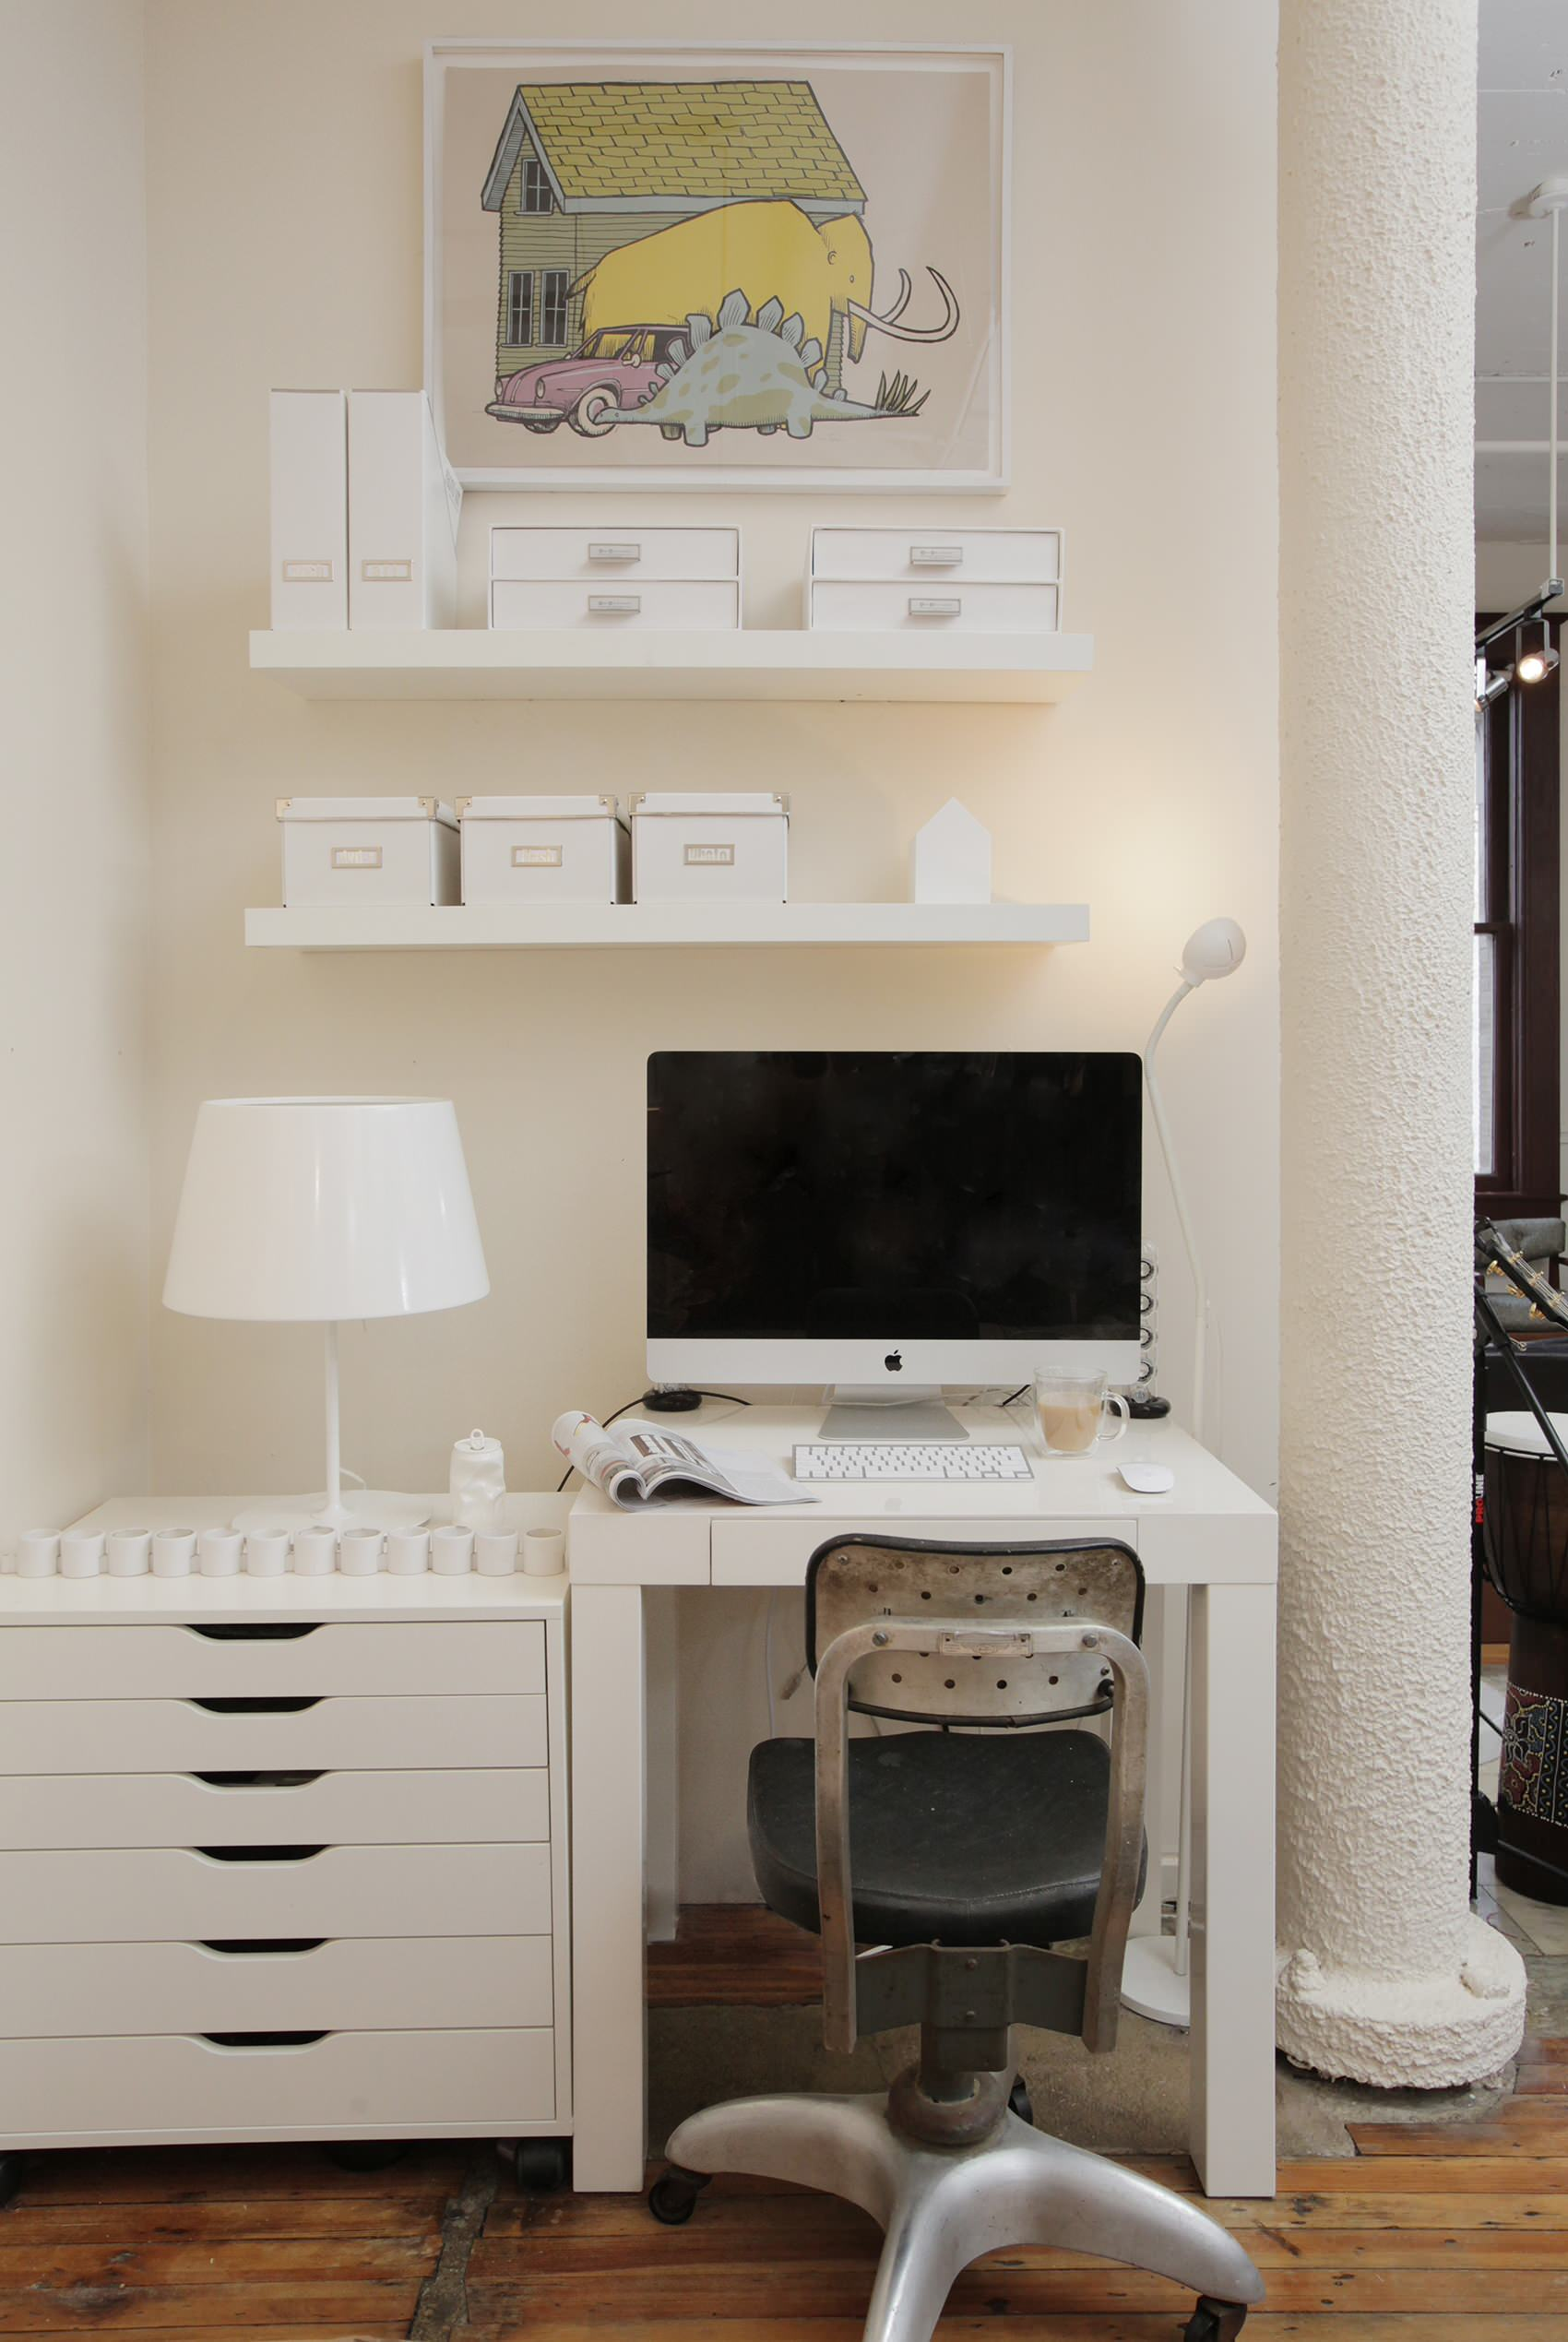 Antique Chair And Desk Nook With Desk Space Plus Open Storage Also Storage Boxes With Rustic Wood Floor Plus Small Desk And White Cabinet Also White Floating Shelves For White Magazine File